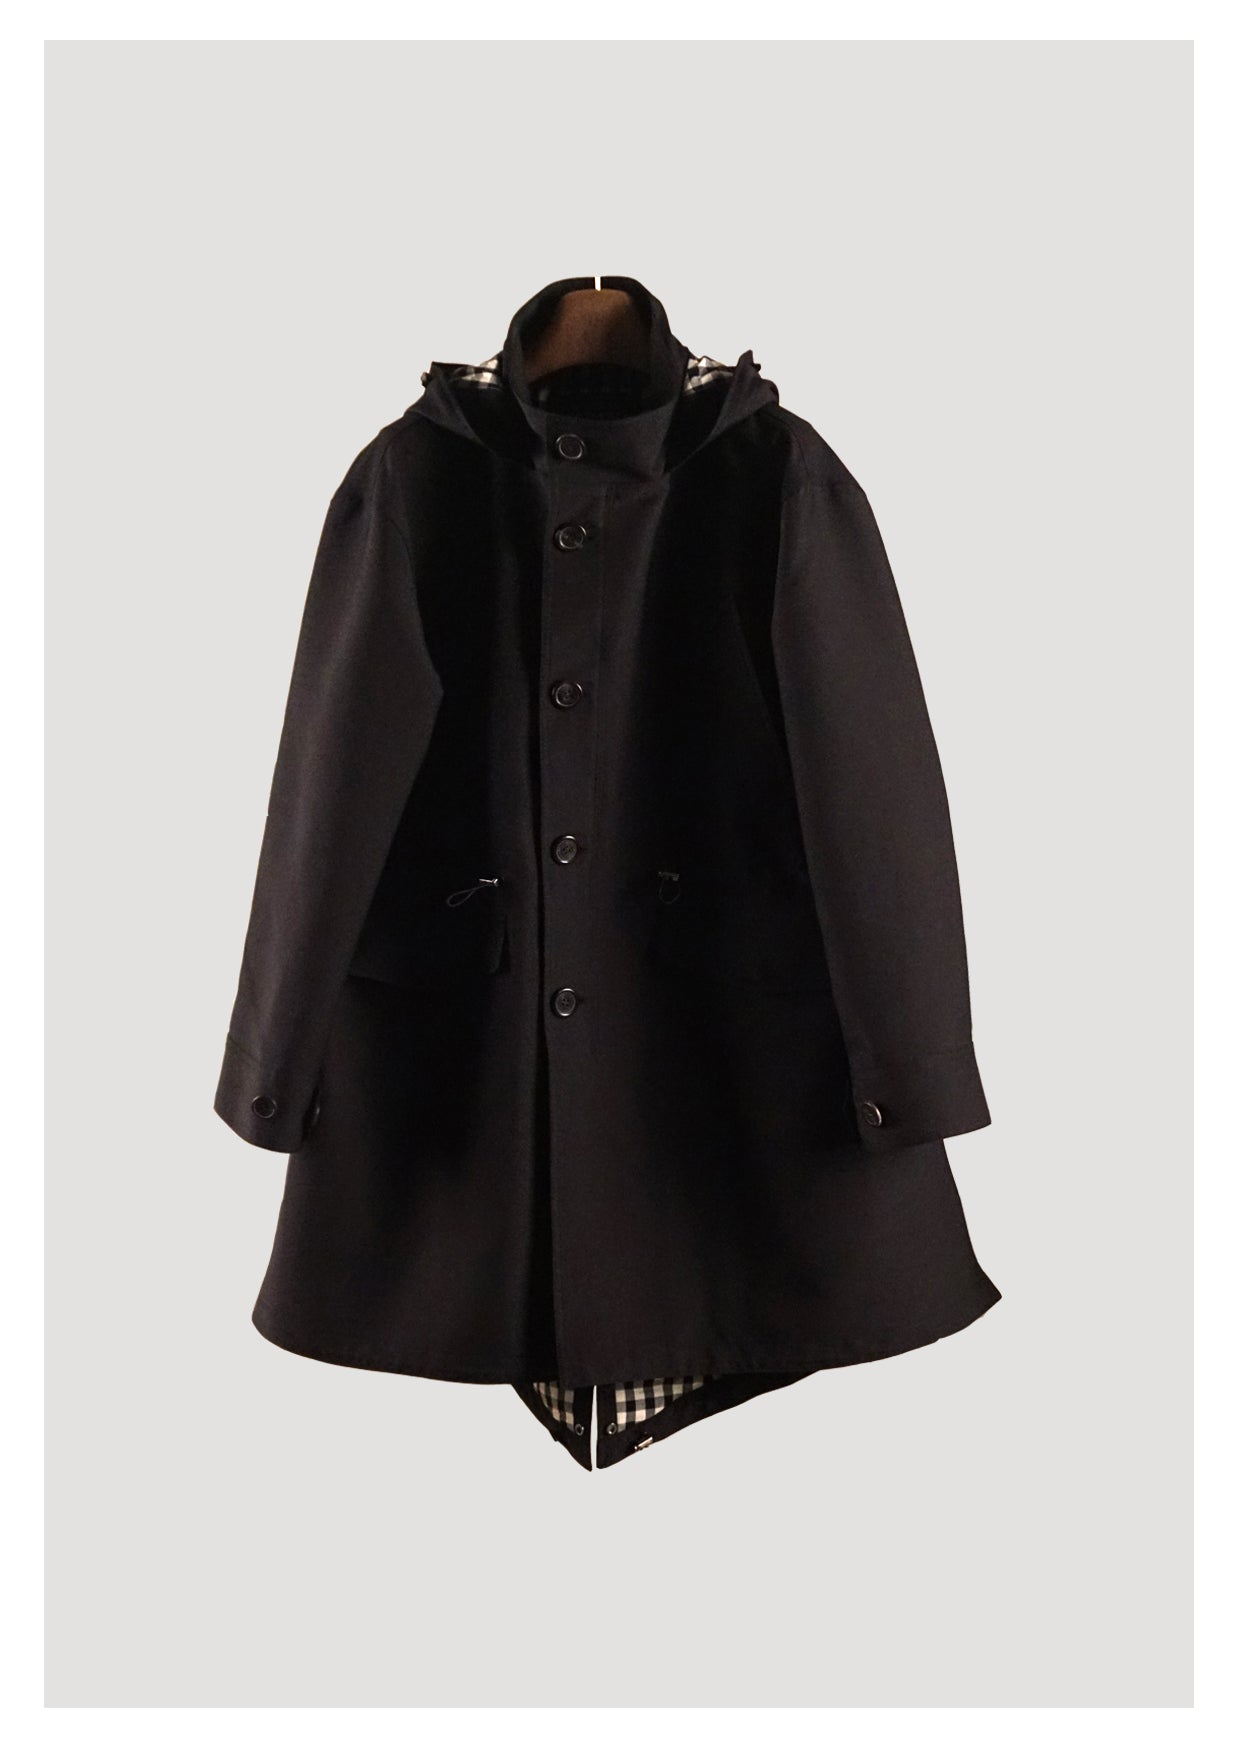 VOLAJU Black Cotton Mods Coat